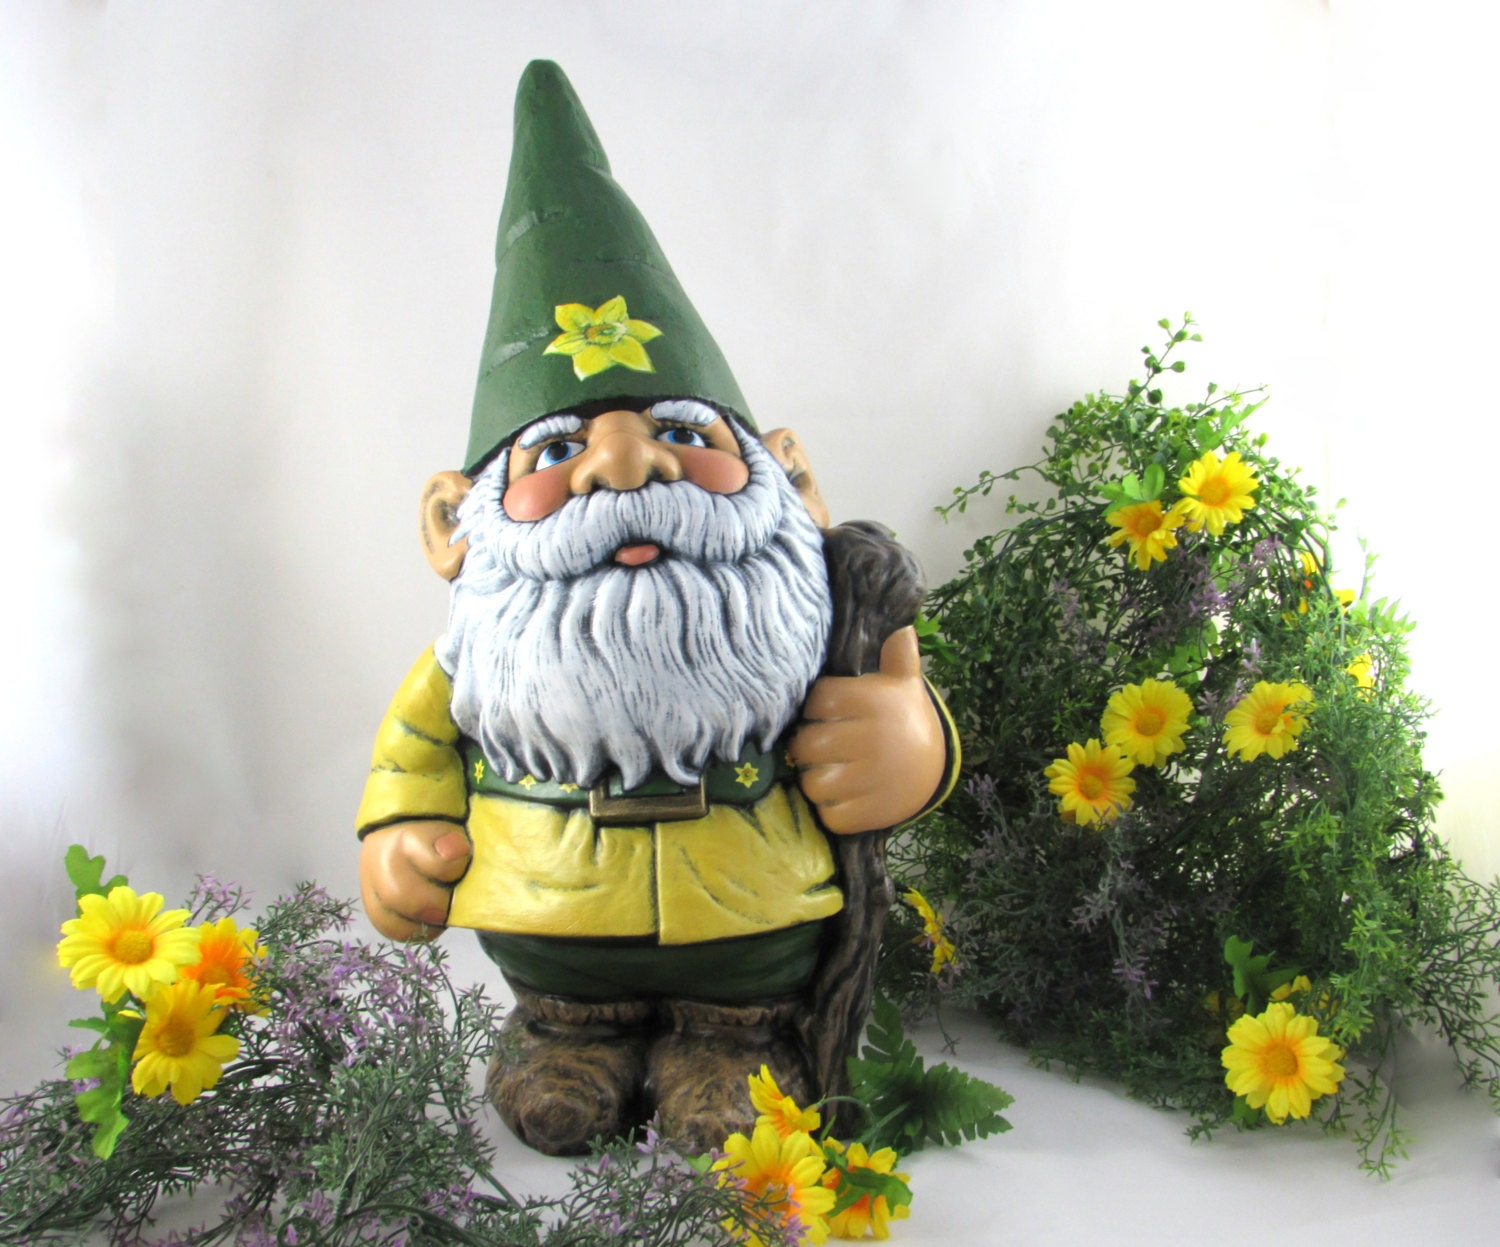 Gnome In Garden: Ceramic LARGE Gnome With Artisan Painted Flowers 21 Inches